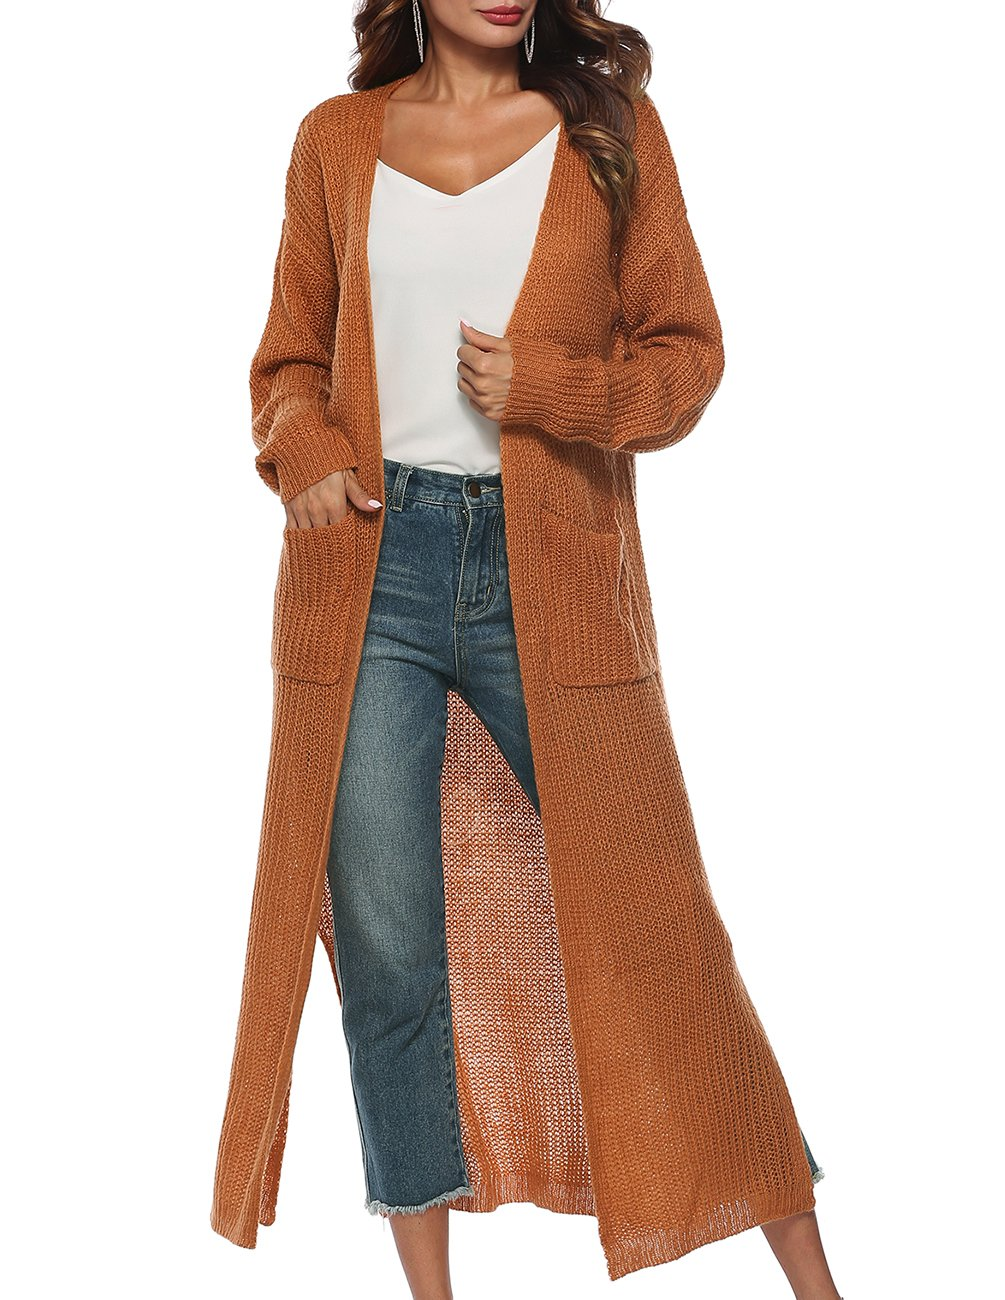 joyliveCY Women's Long Sleeve Solid Open Front Classical Style Cardigan